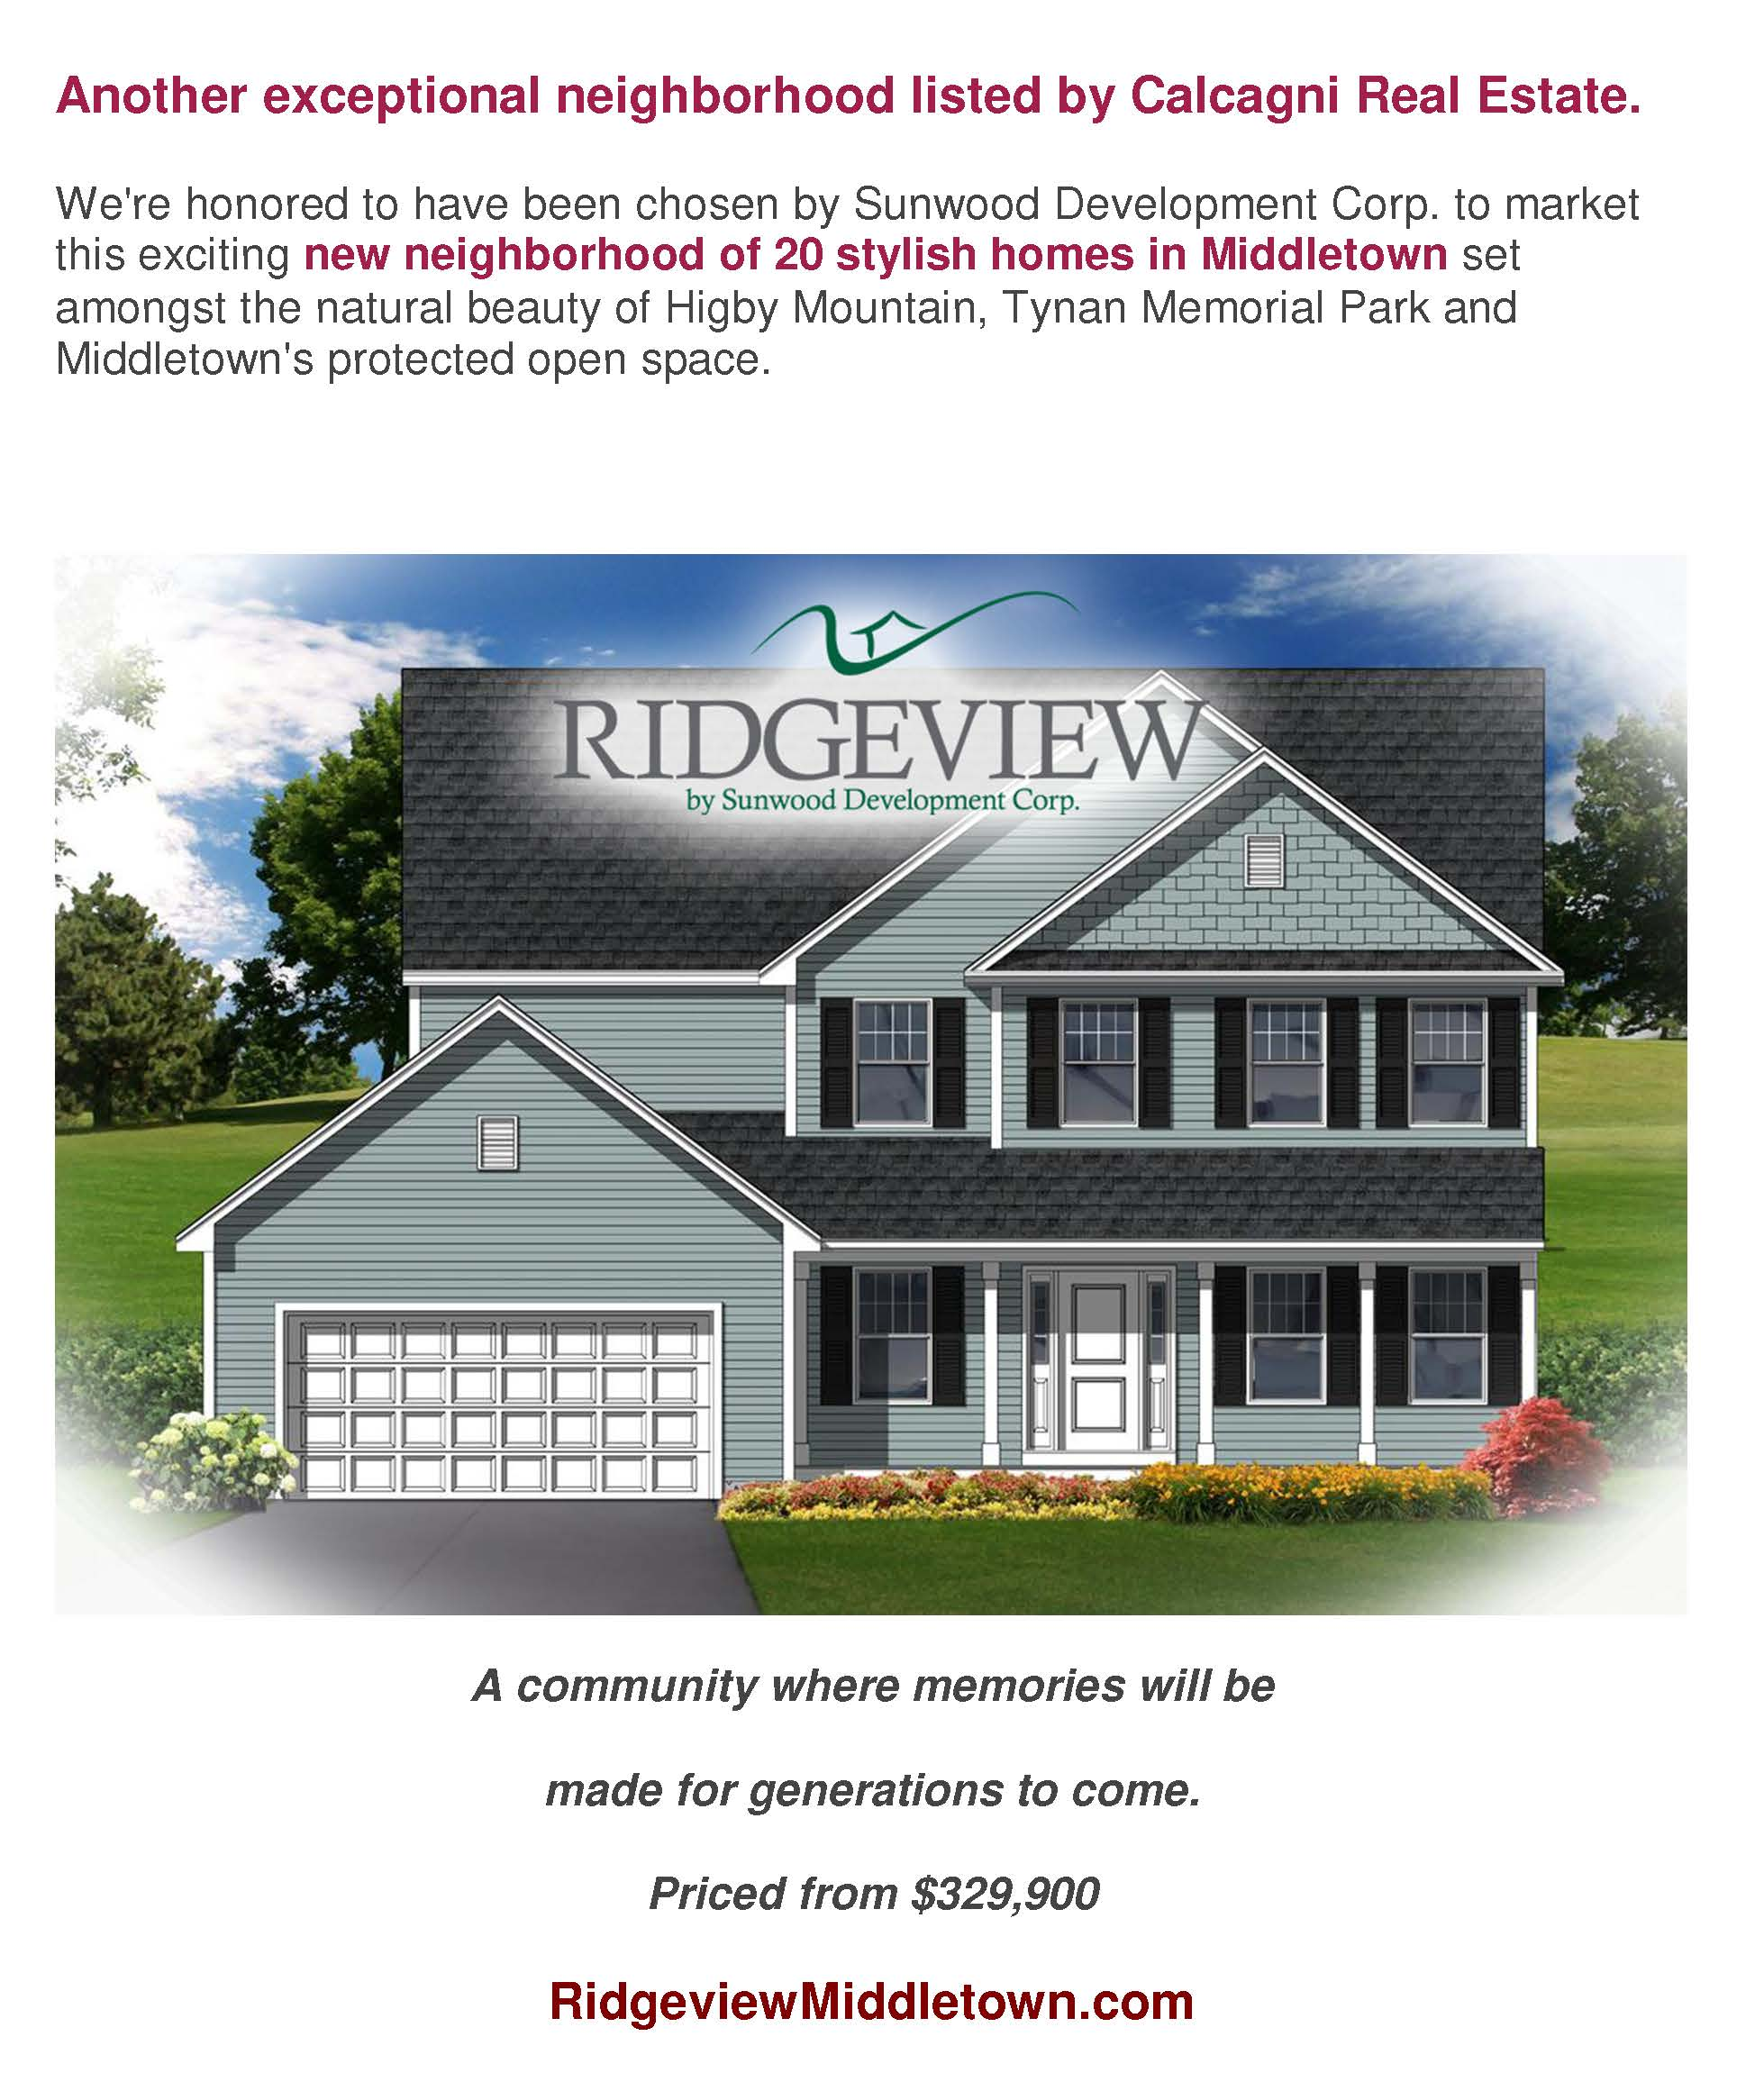 Ridgeview Middletown